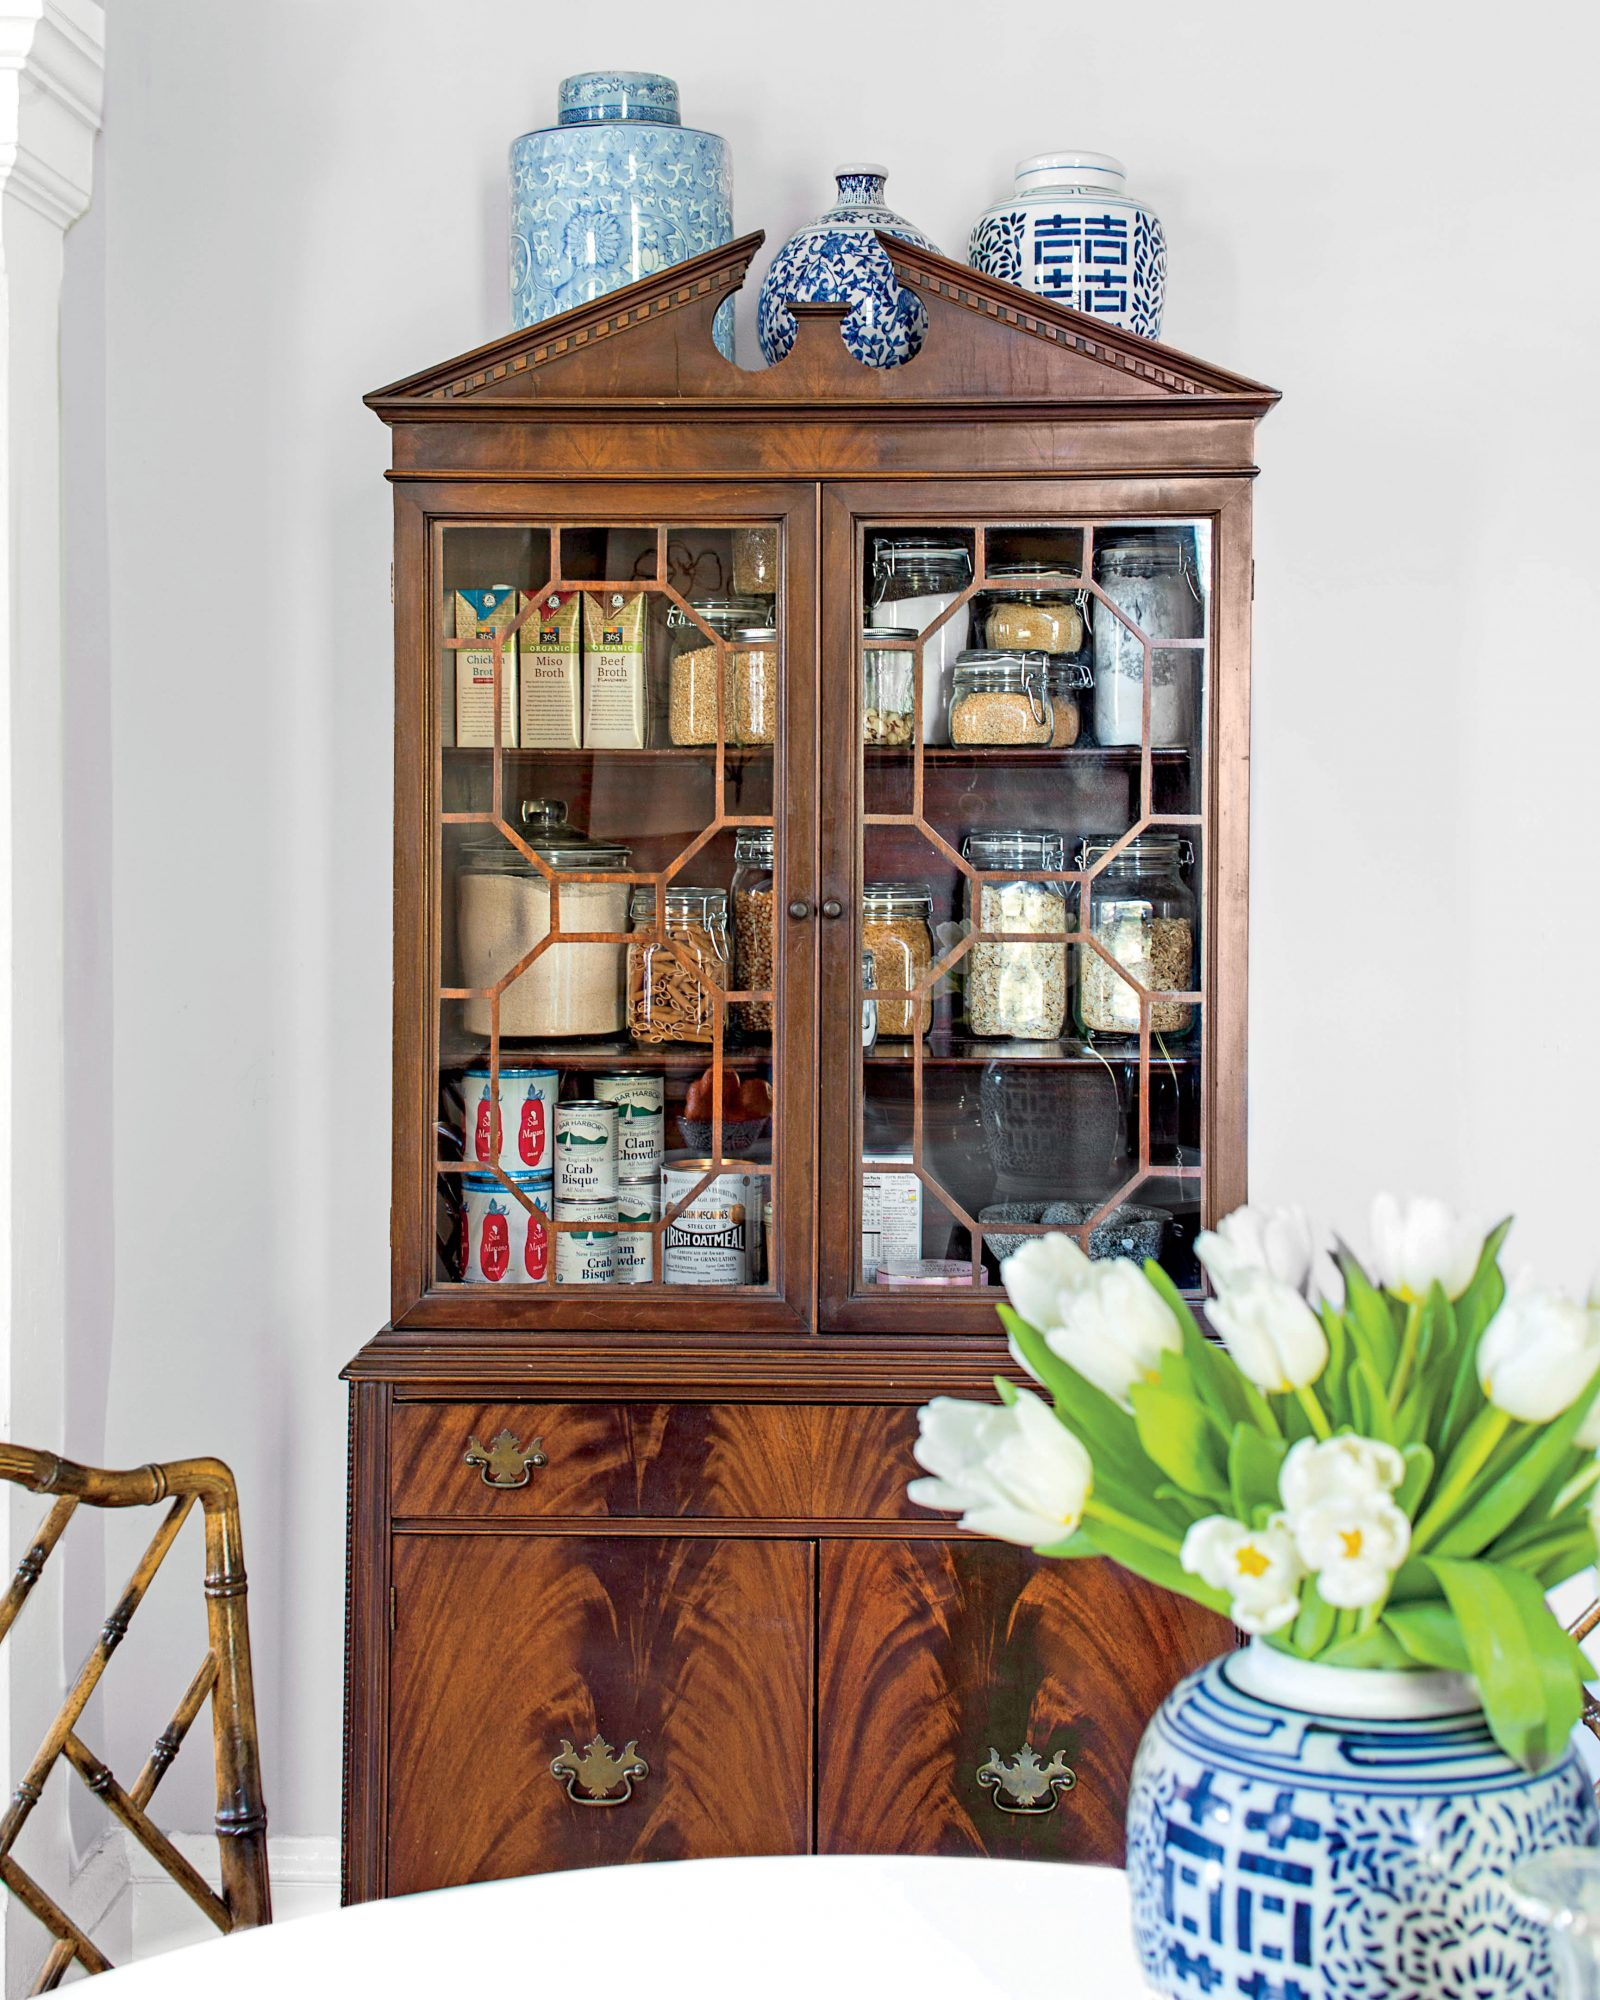 Antique china cabinet in kitchen working as pantry storage